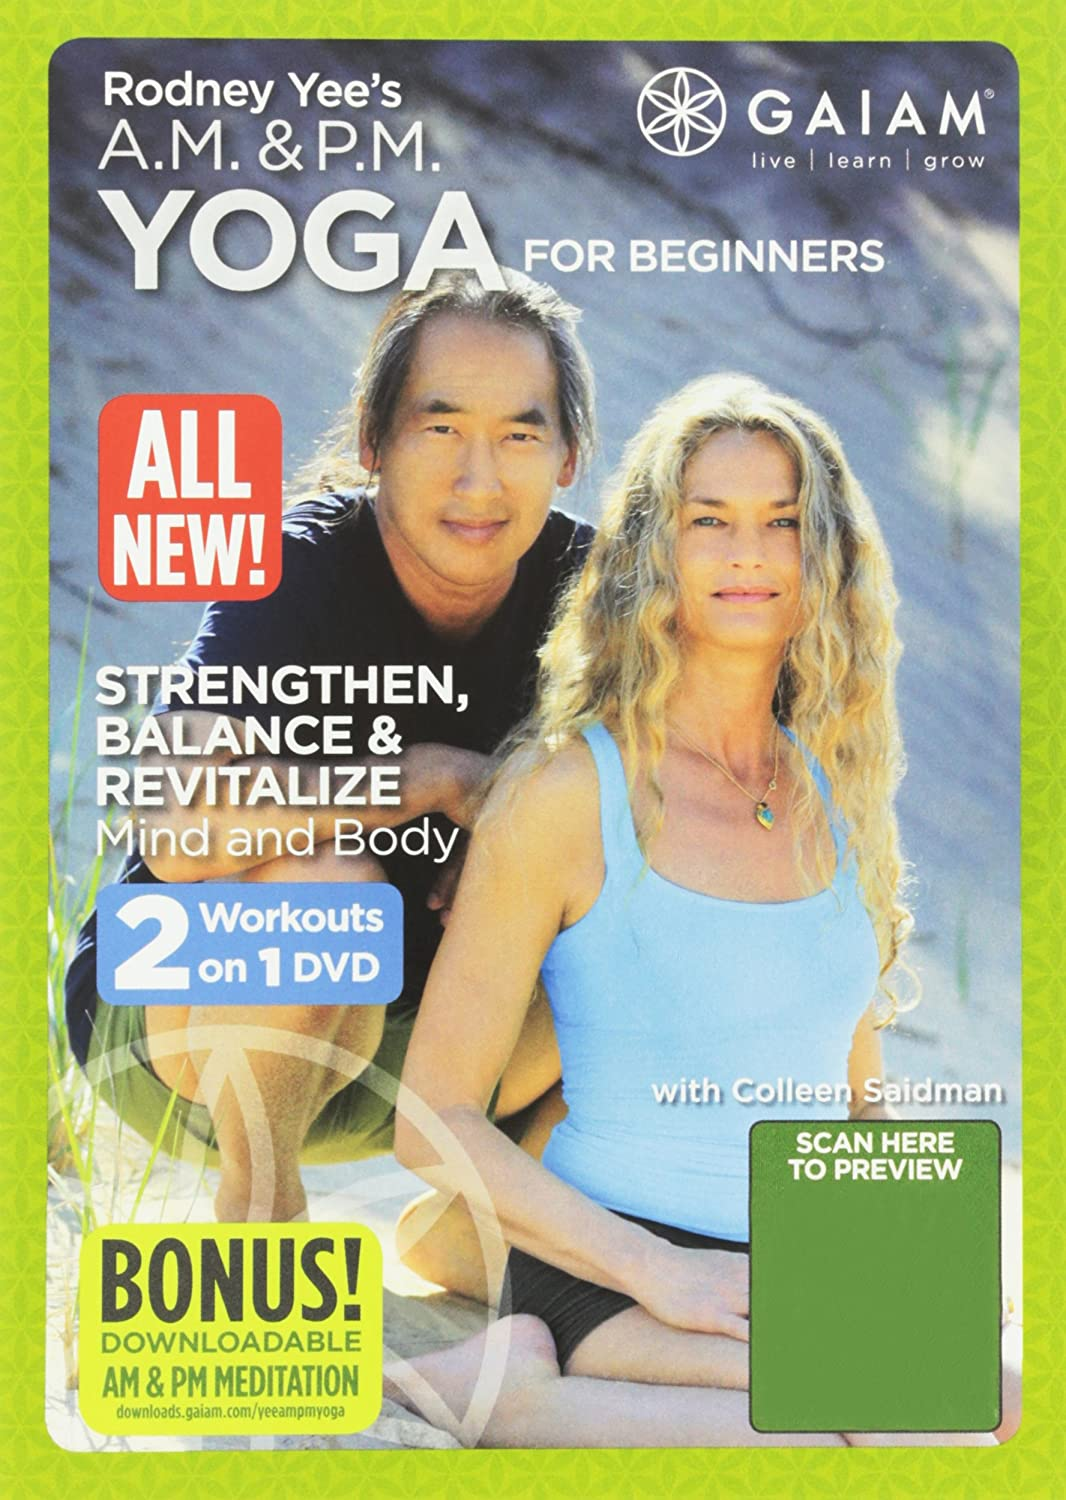 A.M./P.M. YOGA FOR BEGINNERS Rodney Yee Fit for Life 18713588180 Fitness/Self-Help